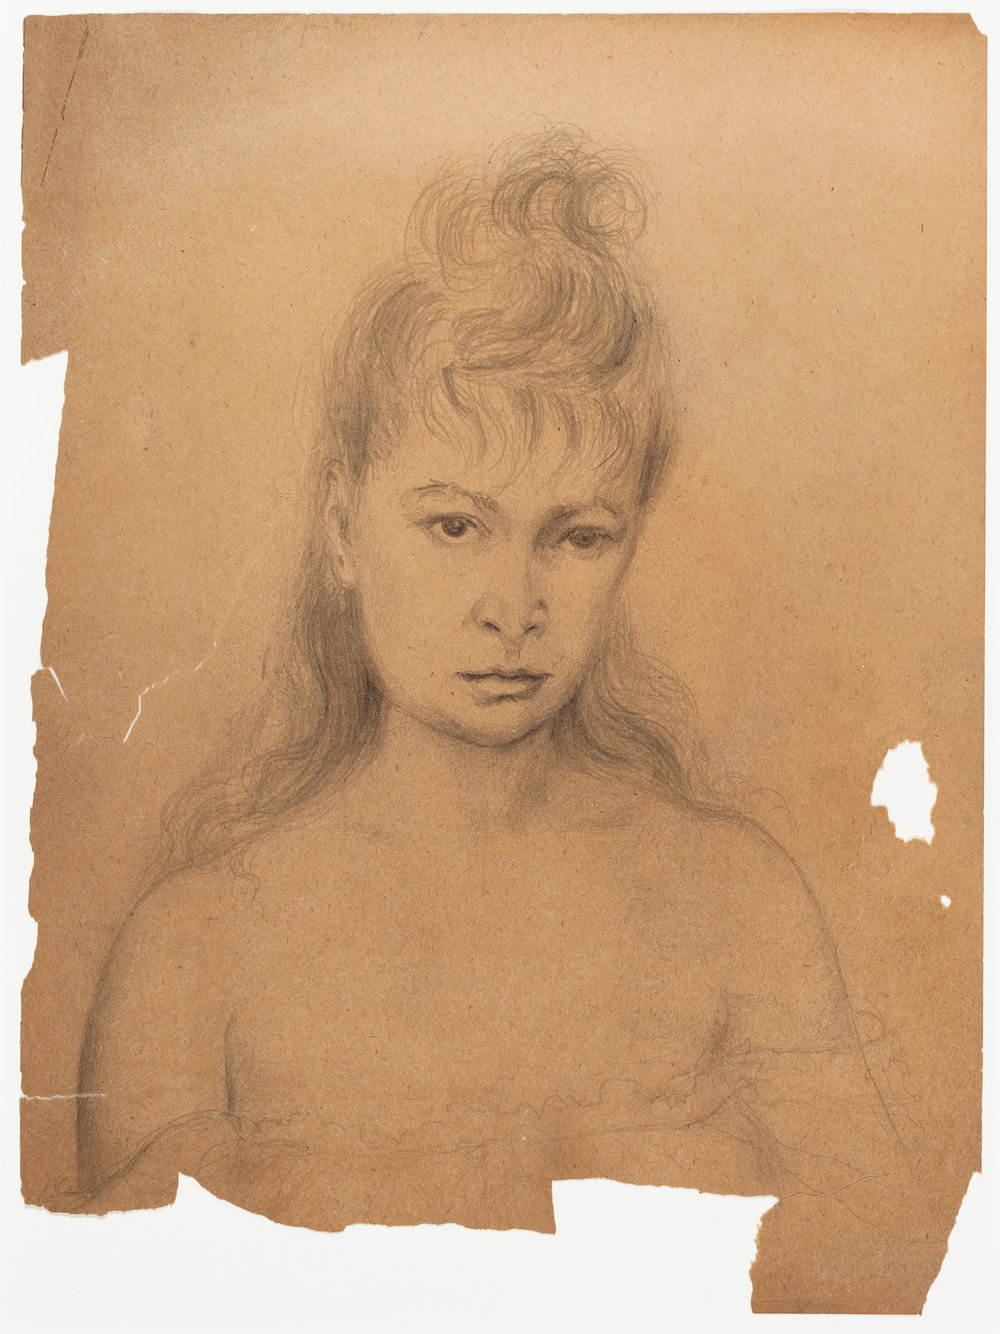 Hedda Sterne,   Self-Portrait  , c. 1940, Pencil on paper, 12 x 9 in.